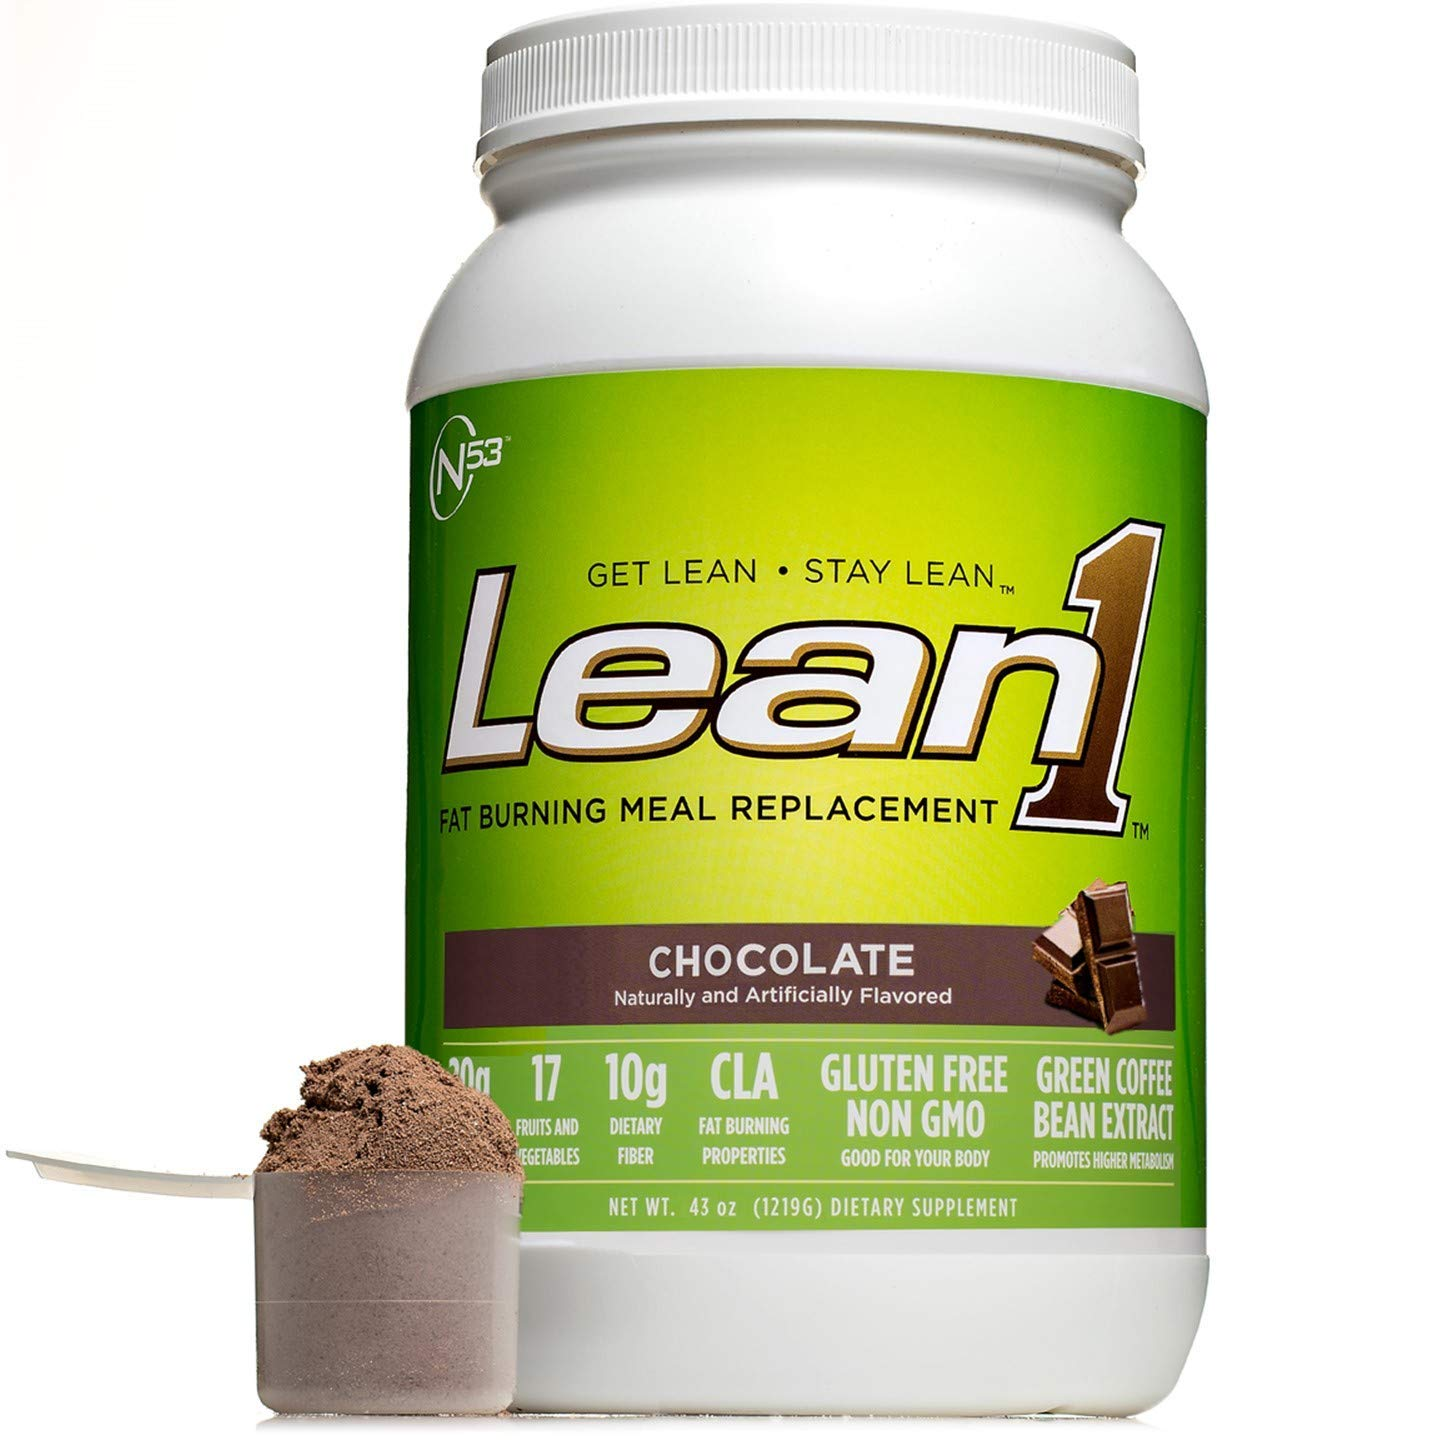 LEAN1 Chocolate Protein Powder Meal Replacement Shakes by Nutrition 53, Lactose & Gluten Free with Green Coffee Bean Extract, 23 Serving Tub - 43 oz by LEAN1